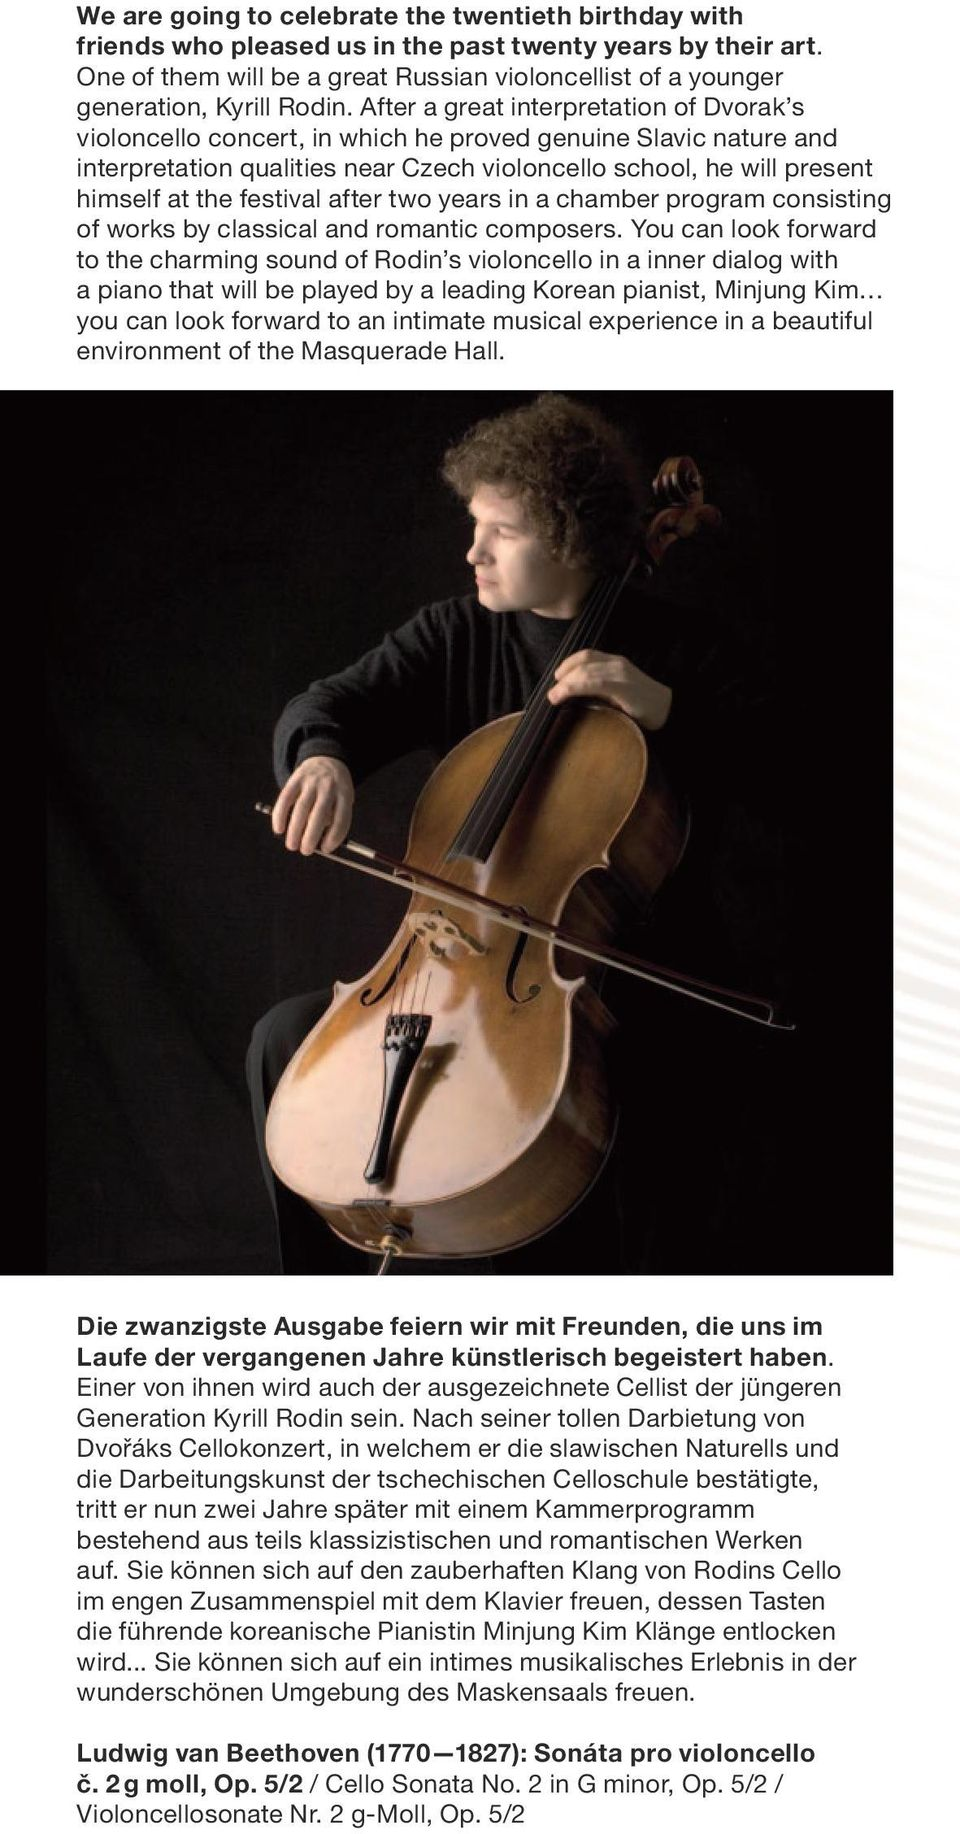 After a great interpretation of Dvorak s violoncello concert, in which he proved genuine Slavic nature and interpretation qualities near Czech violoncello school, he will present himself at the